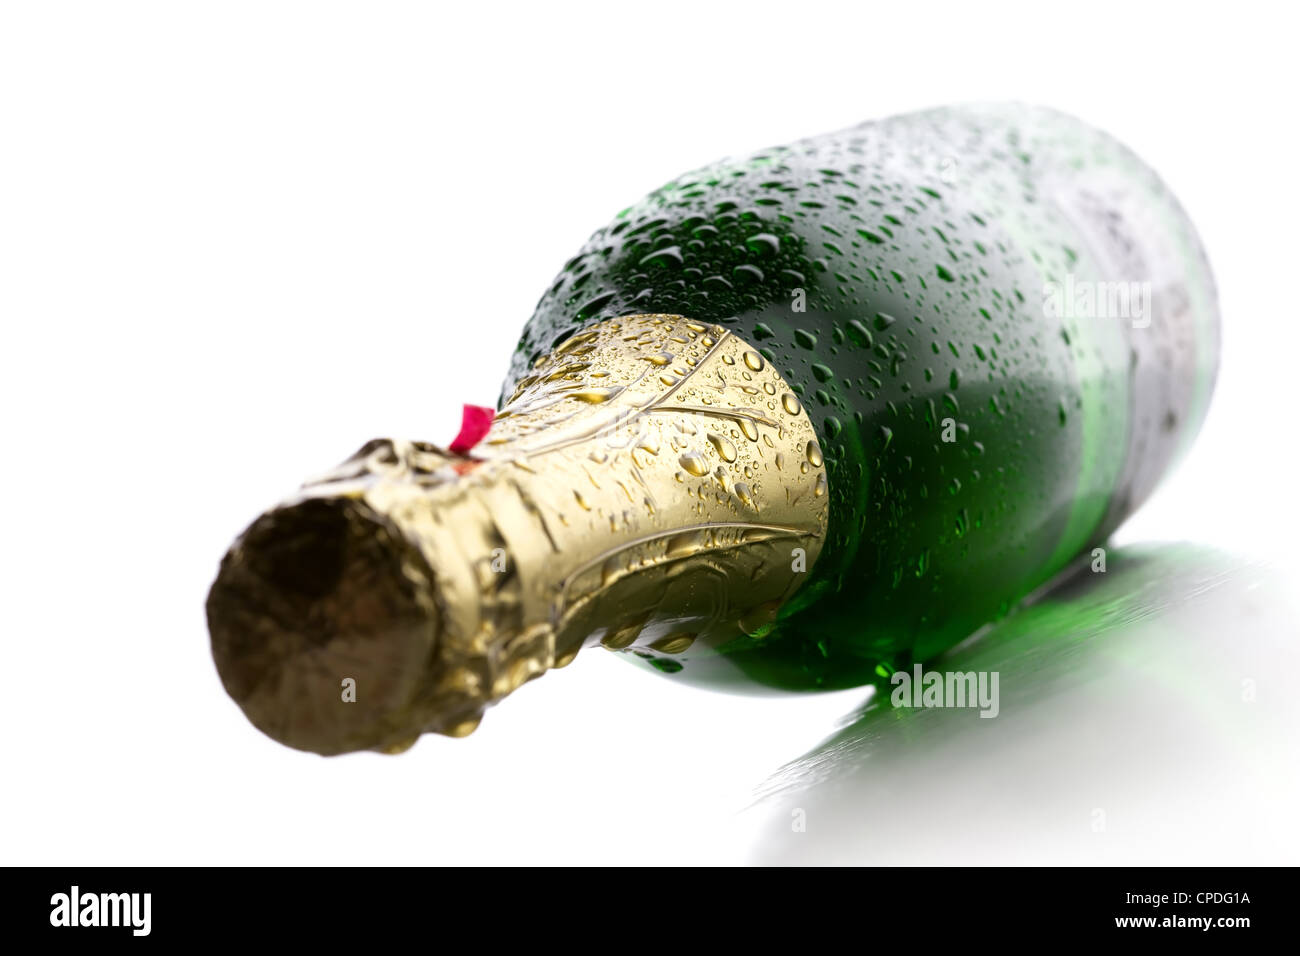 Cold wet bottle of champagne wine on white background - Stock Image